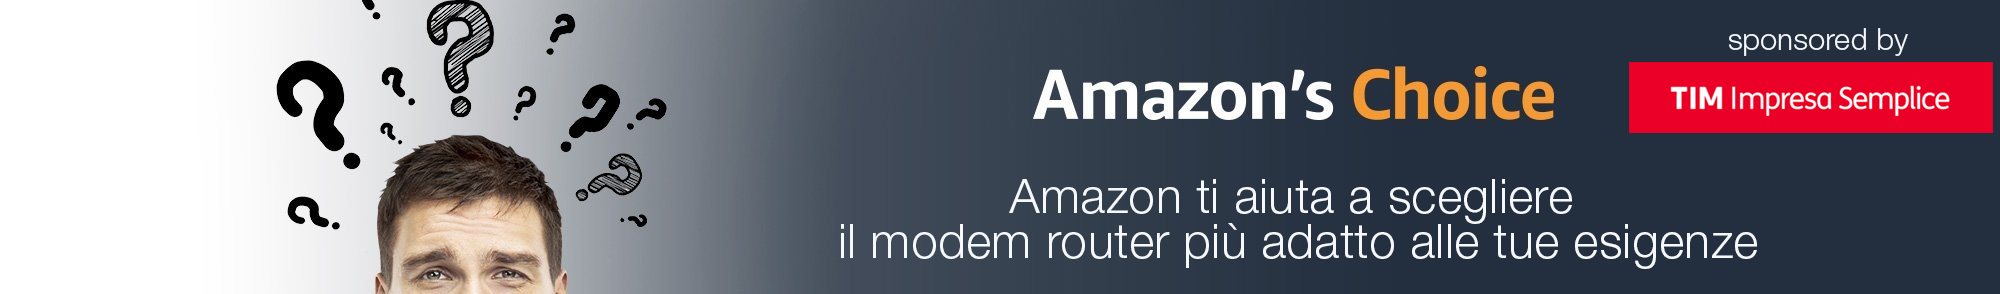 Amazon Choice modem router